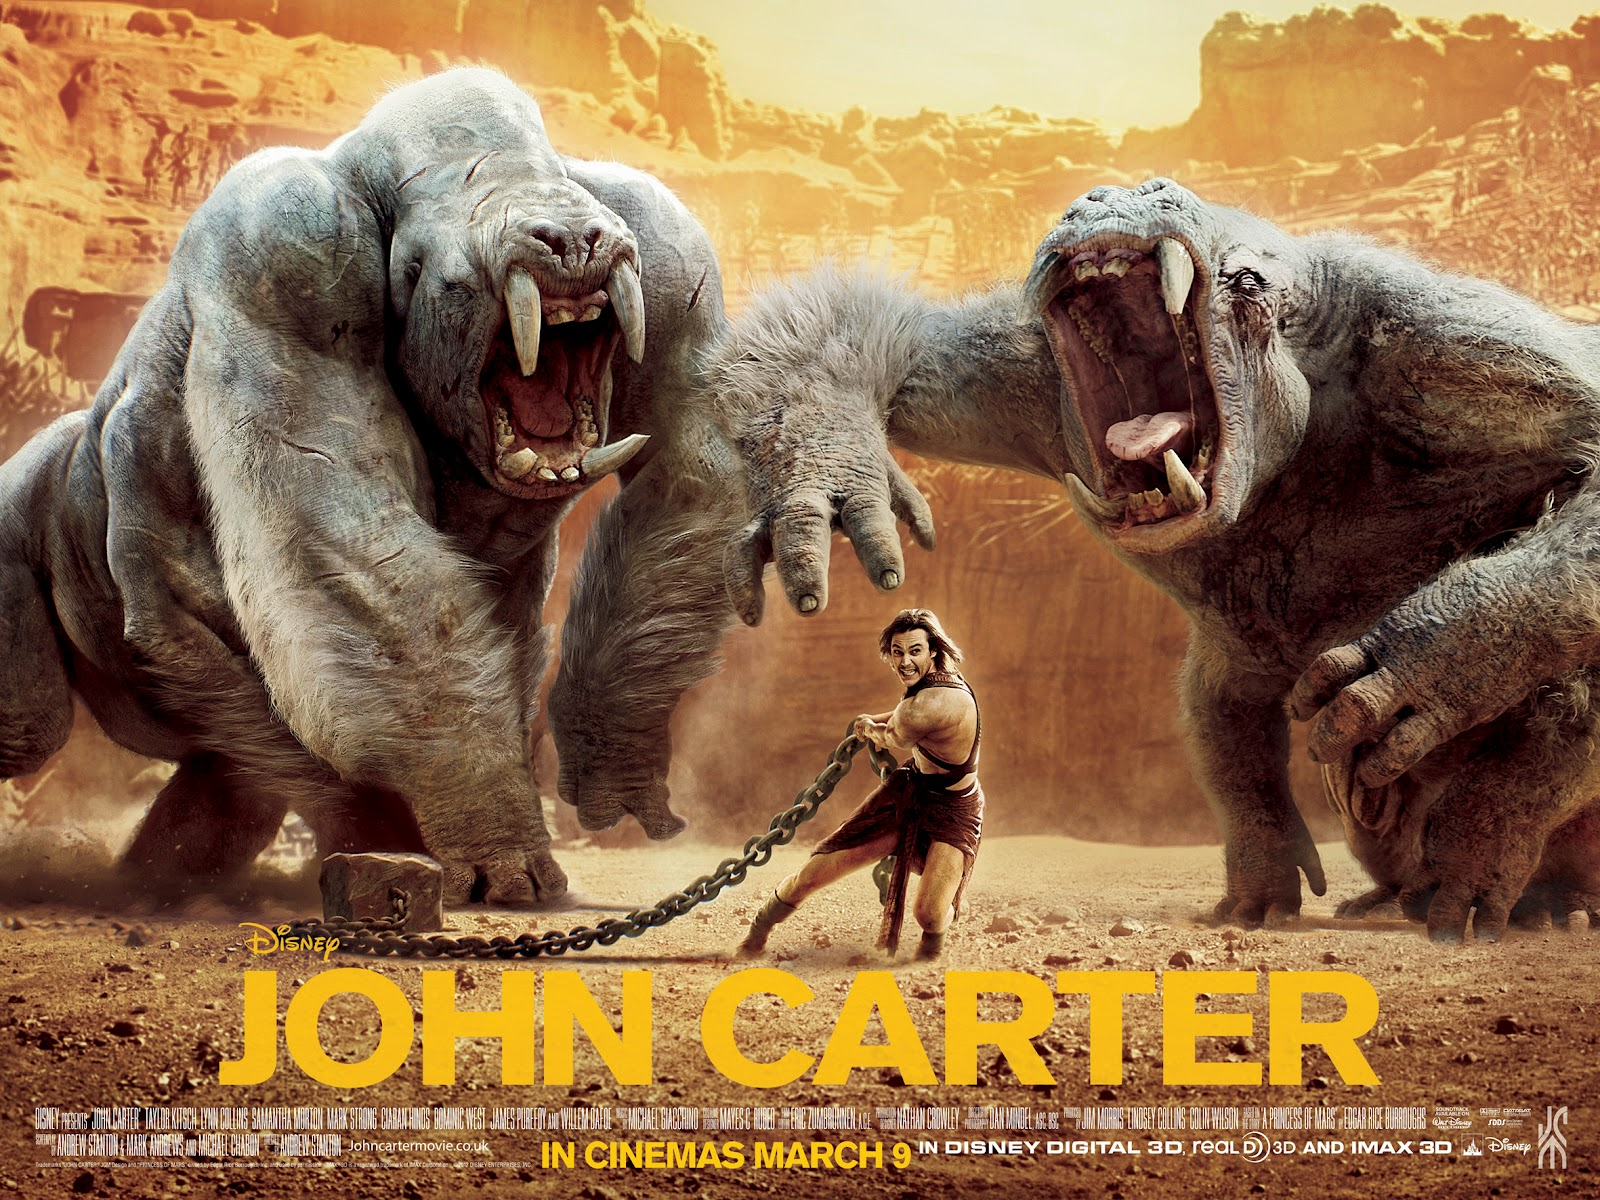 review confusing and unengaging john carter makes avatar look review confusing and unengaging john carter makes avatar look like well avatar